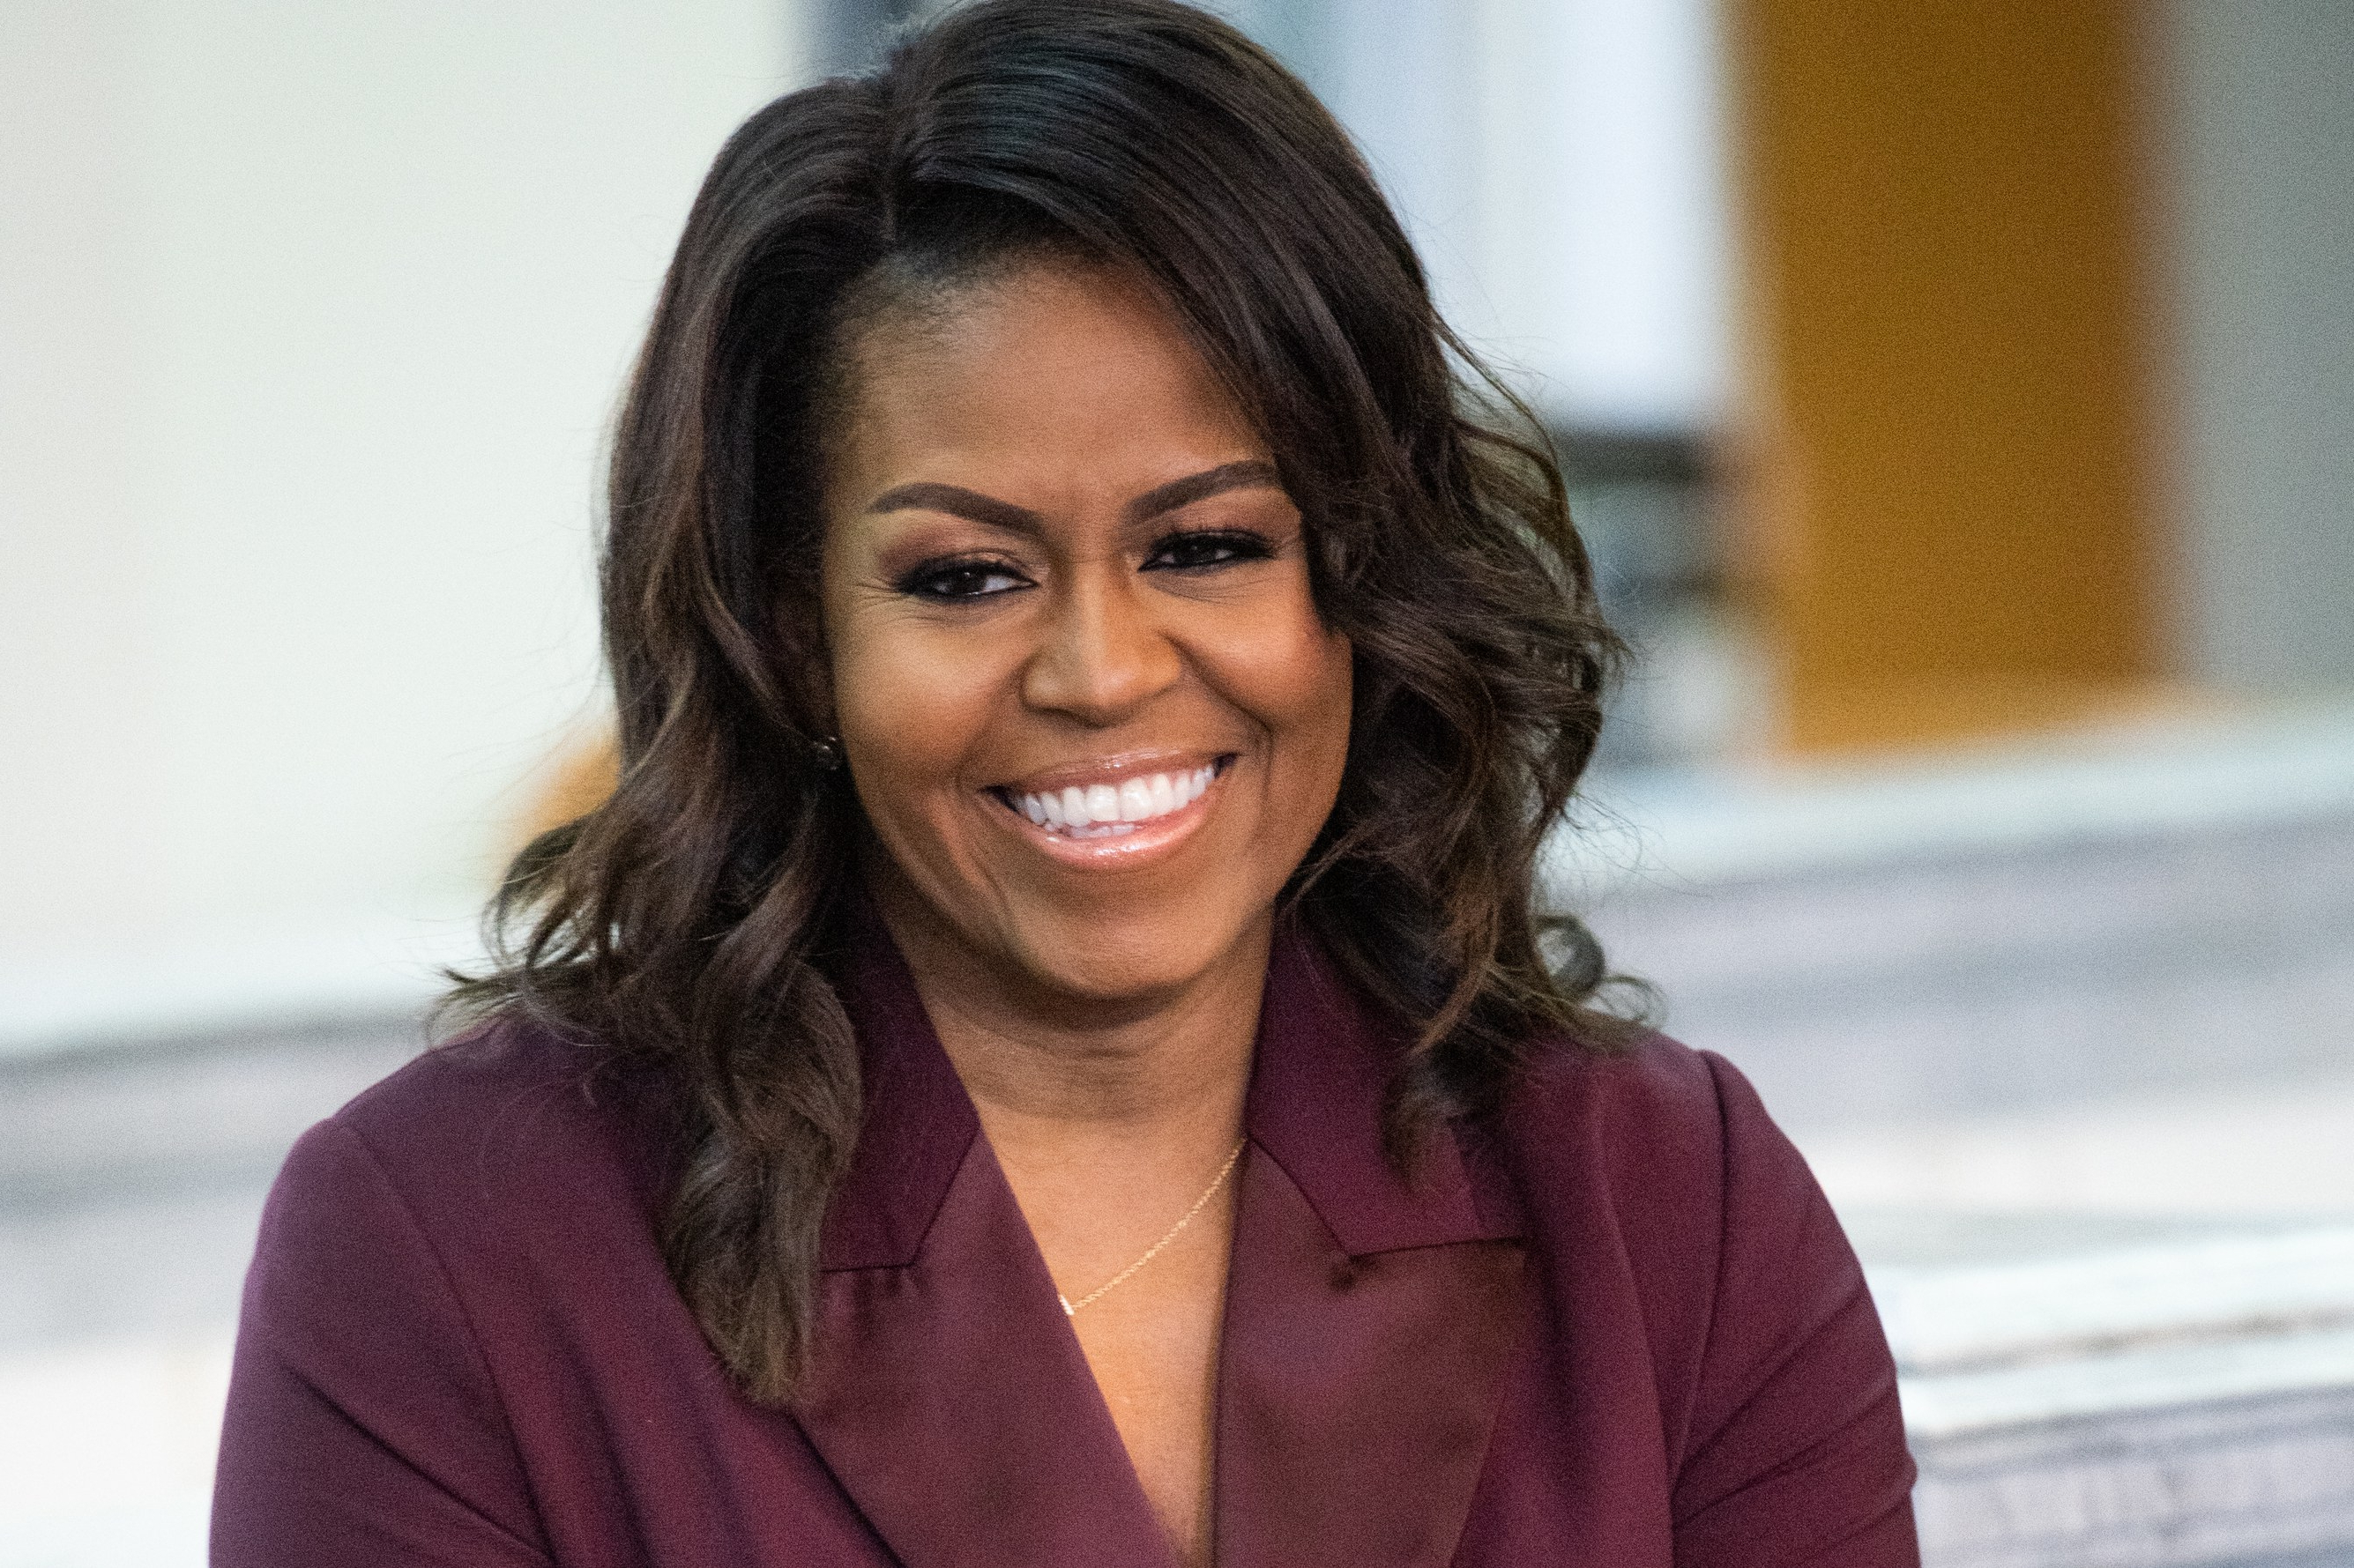 Michelle Obama Gave Her Natural Curls Blonde Ombré Regarding Curls And Blonde Highlights Hairstyles (View 17 of 20)